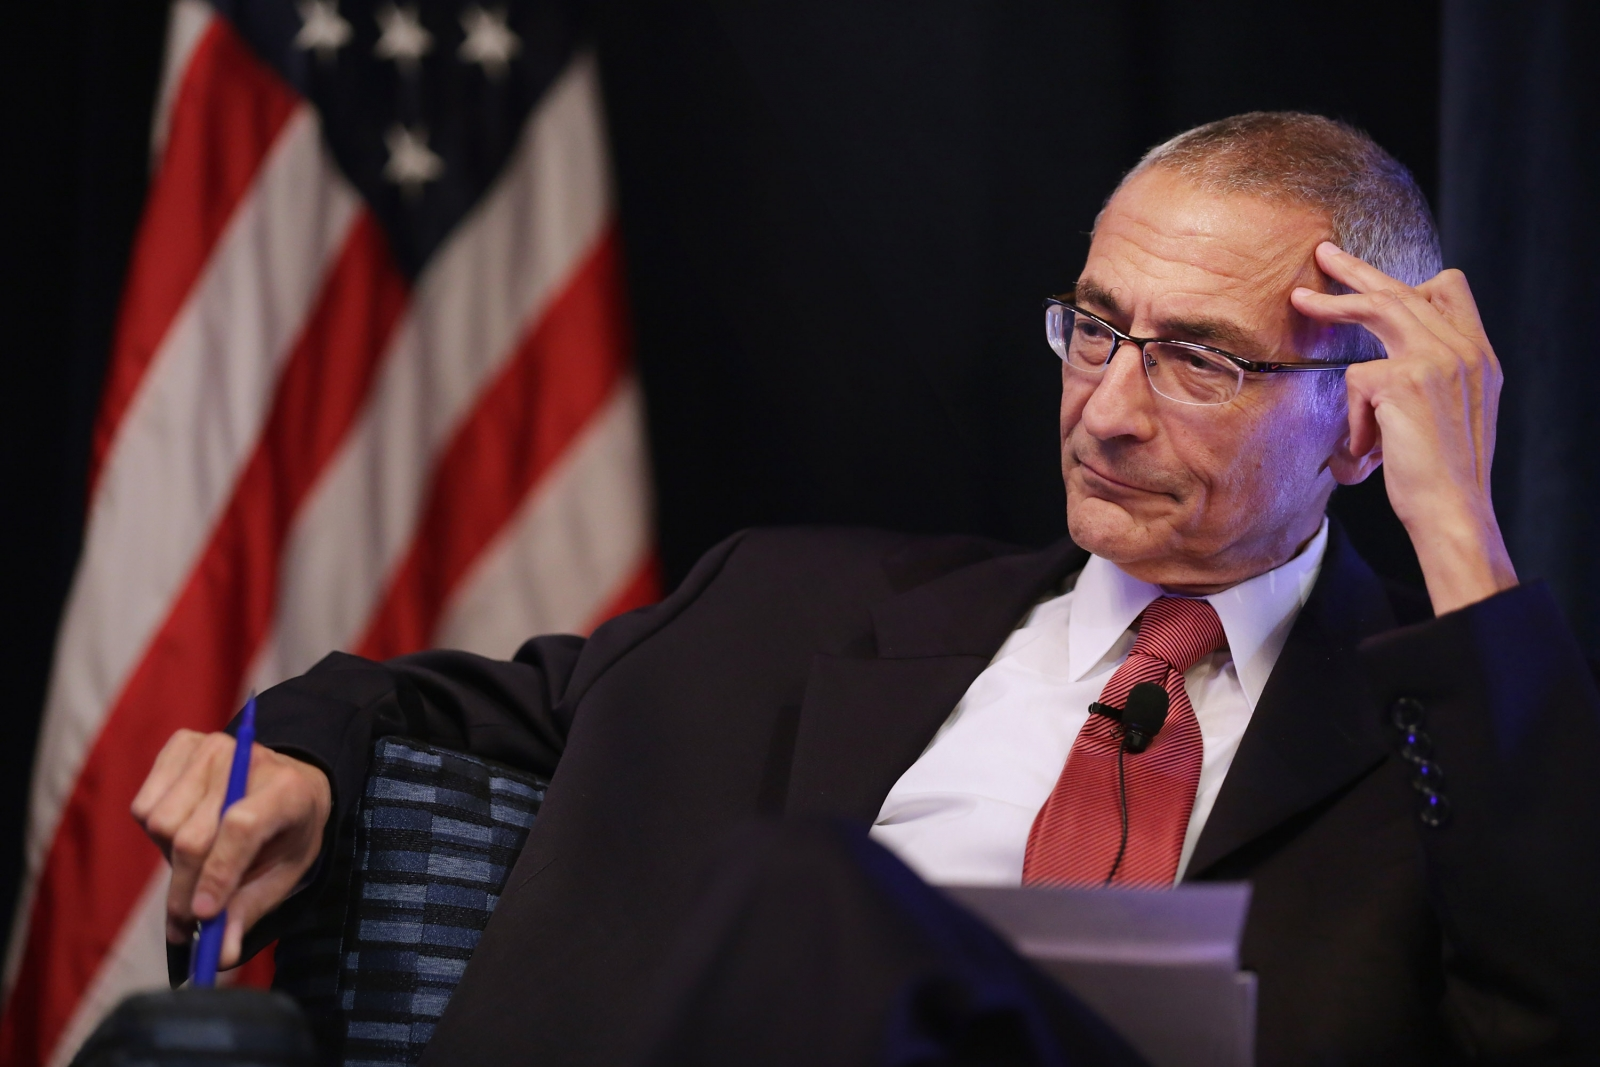 WikiLeaks latest cache reveals Podesta advised to 'dump all those emails' from Clinton private server